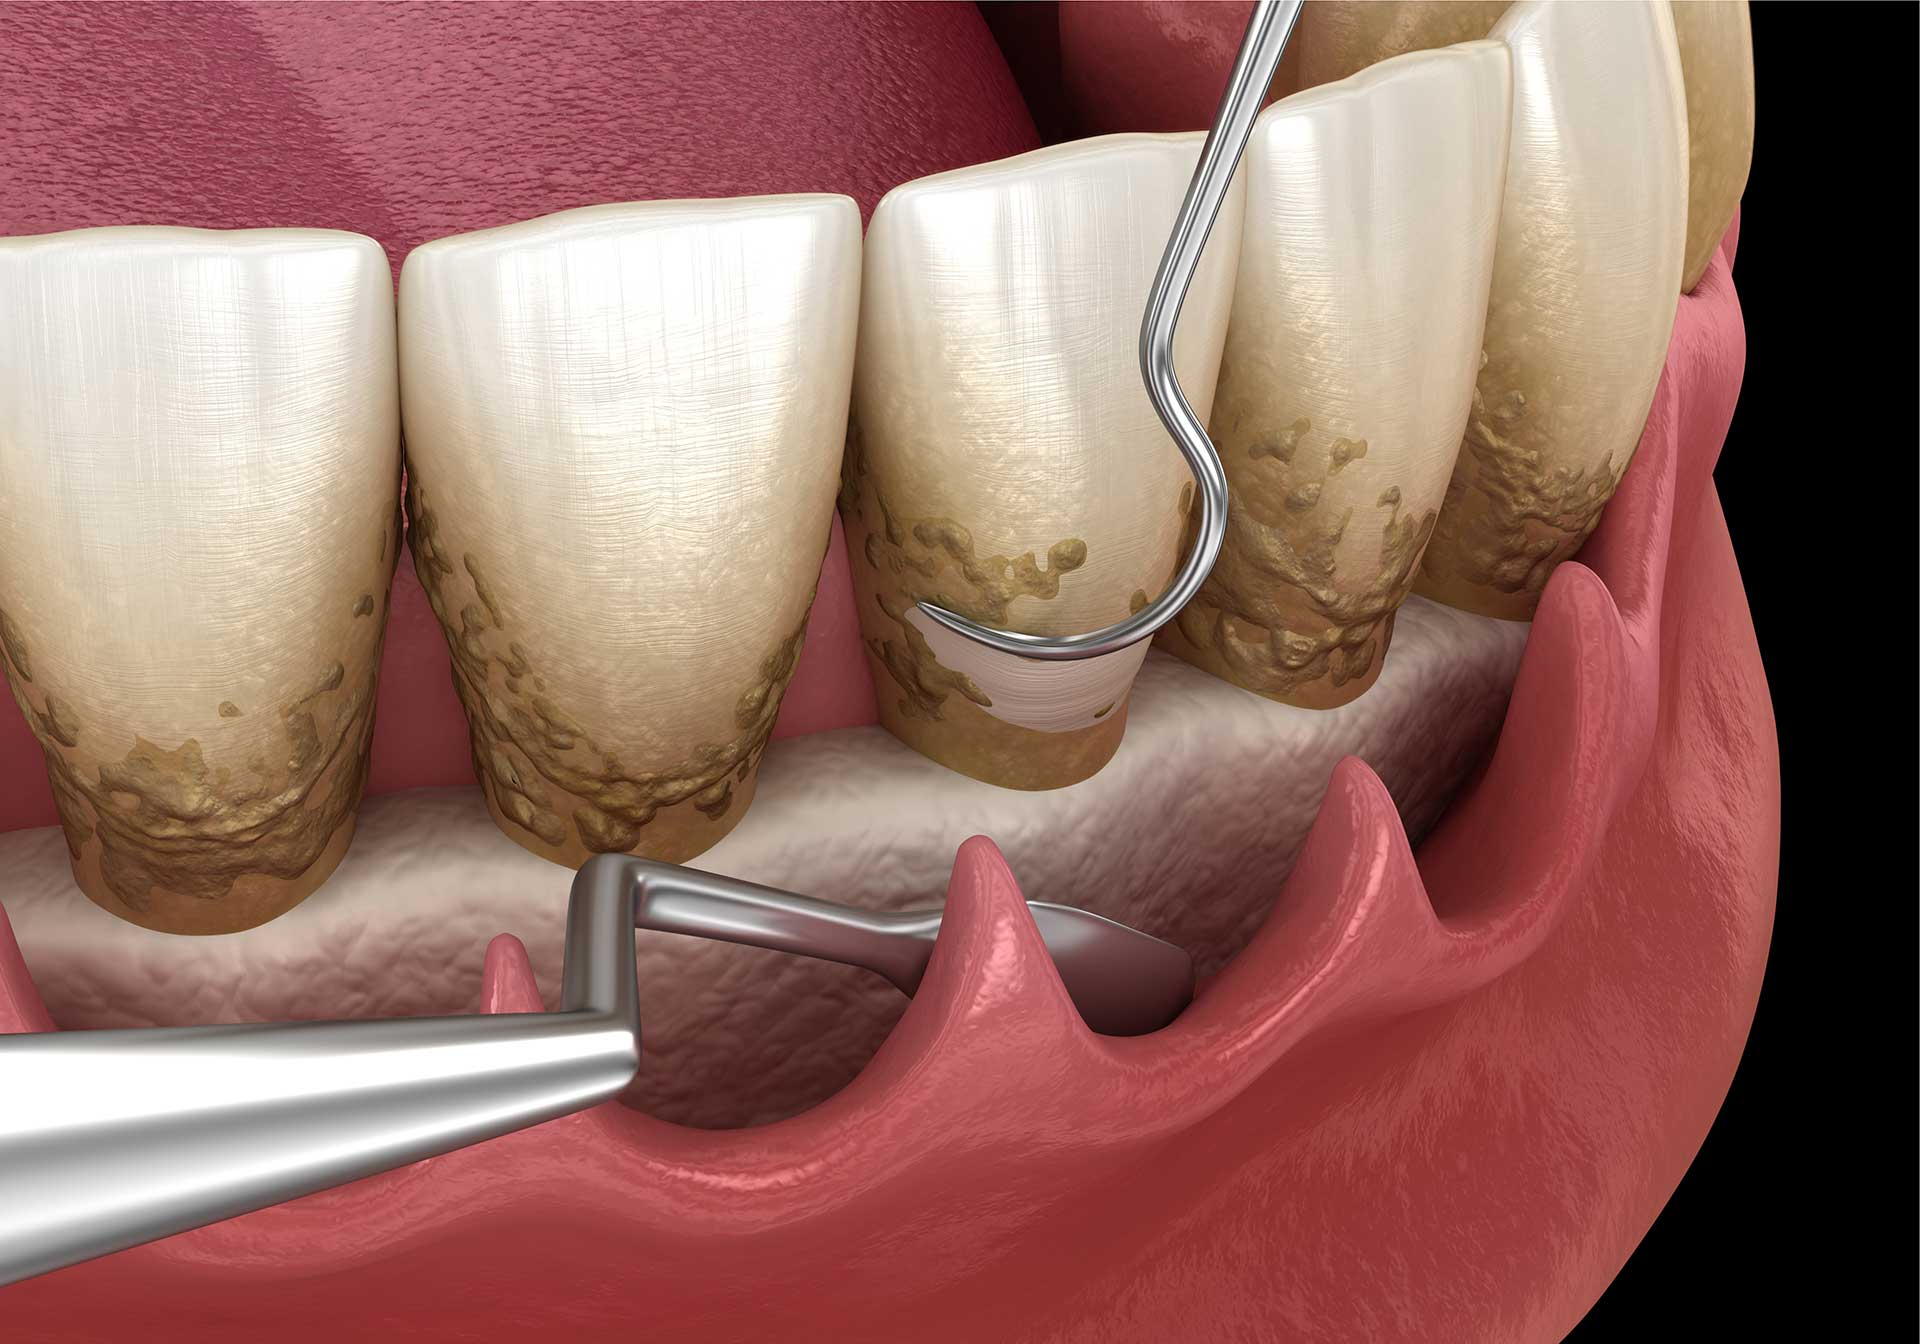 Dental deep cleaning: scaling and root planing in Mid-town East, New York